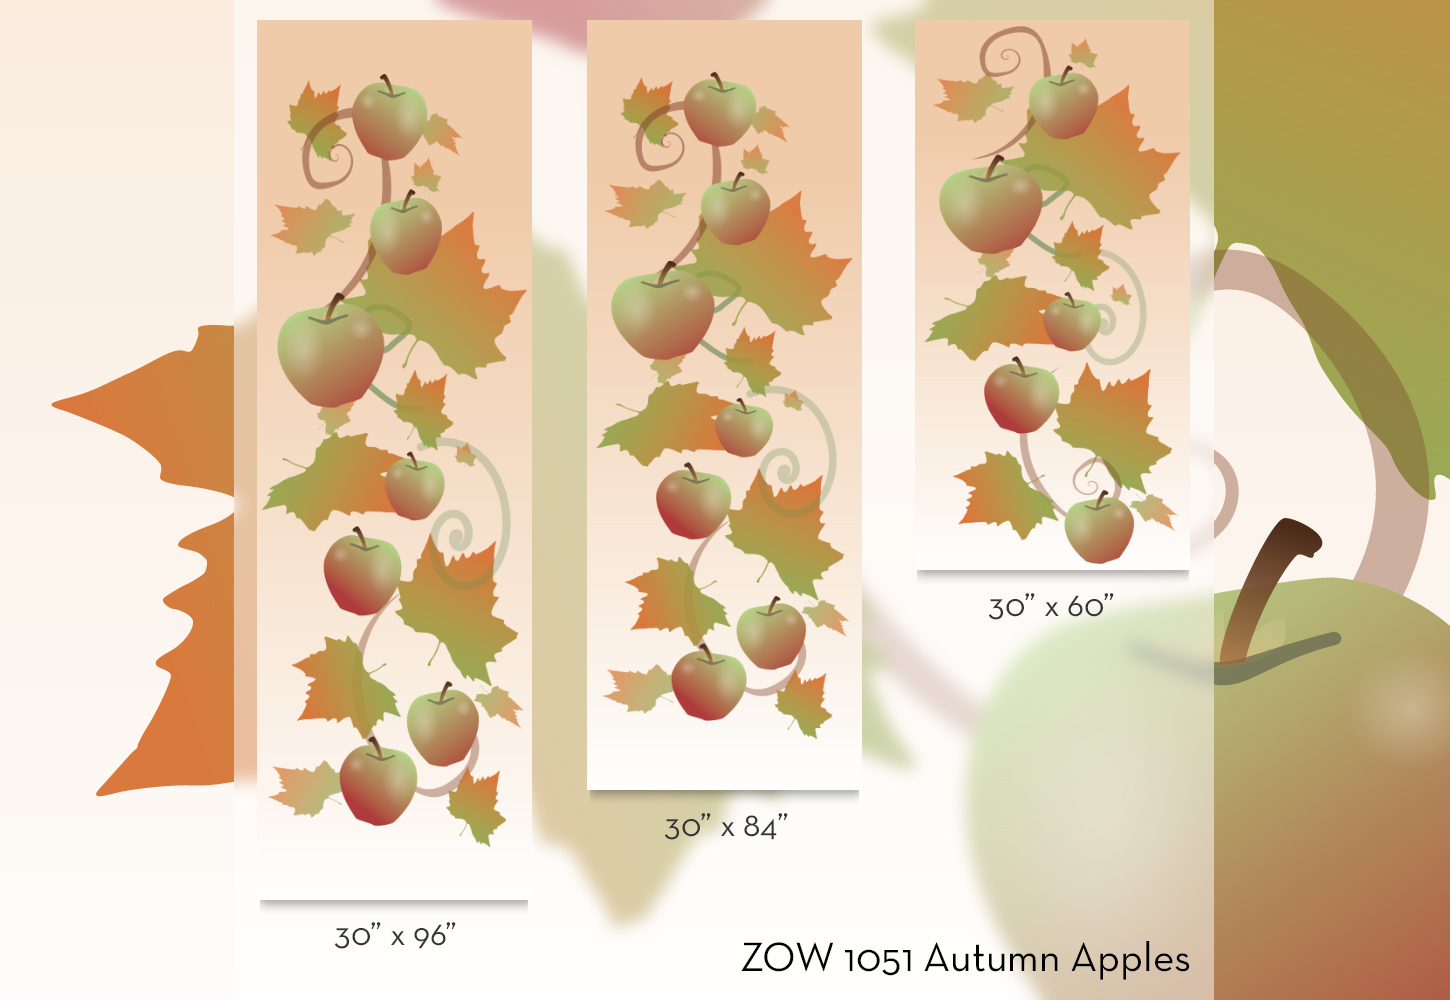 ZOW 1051 Autumn Apples